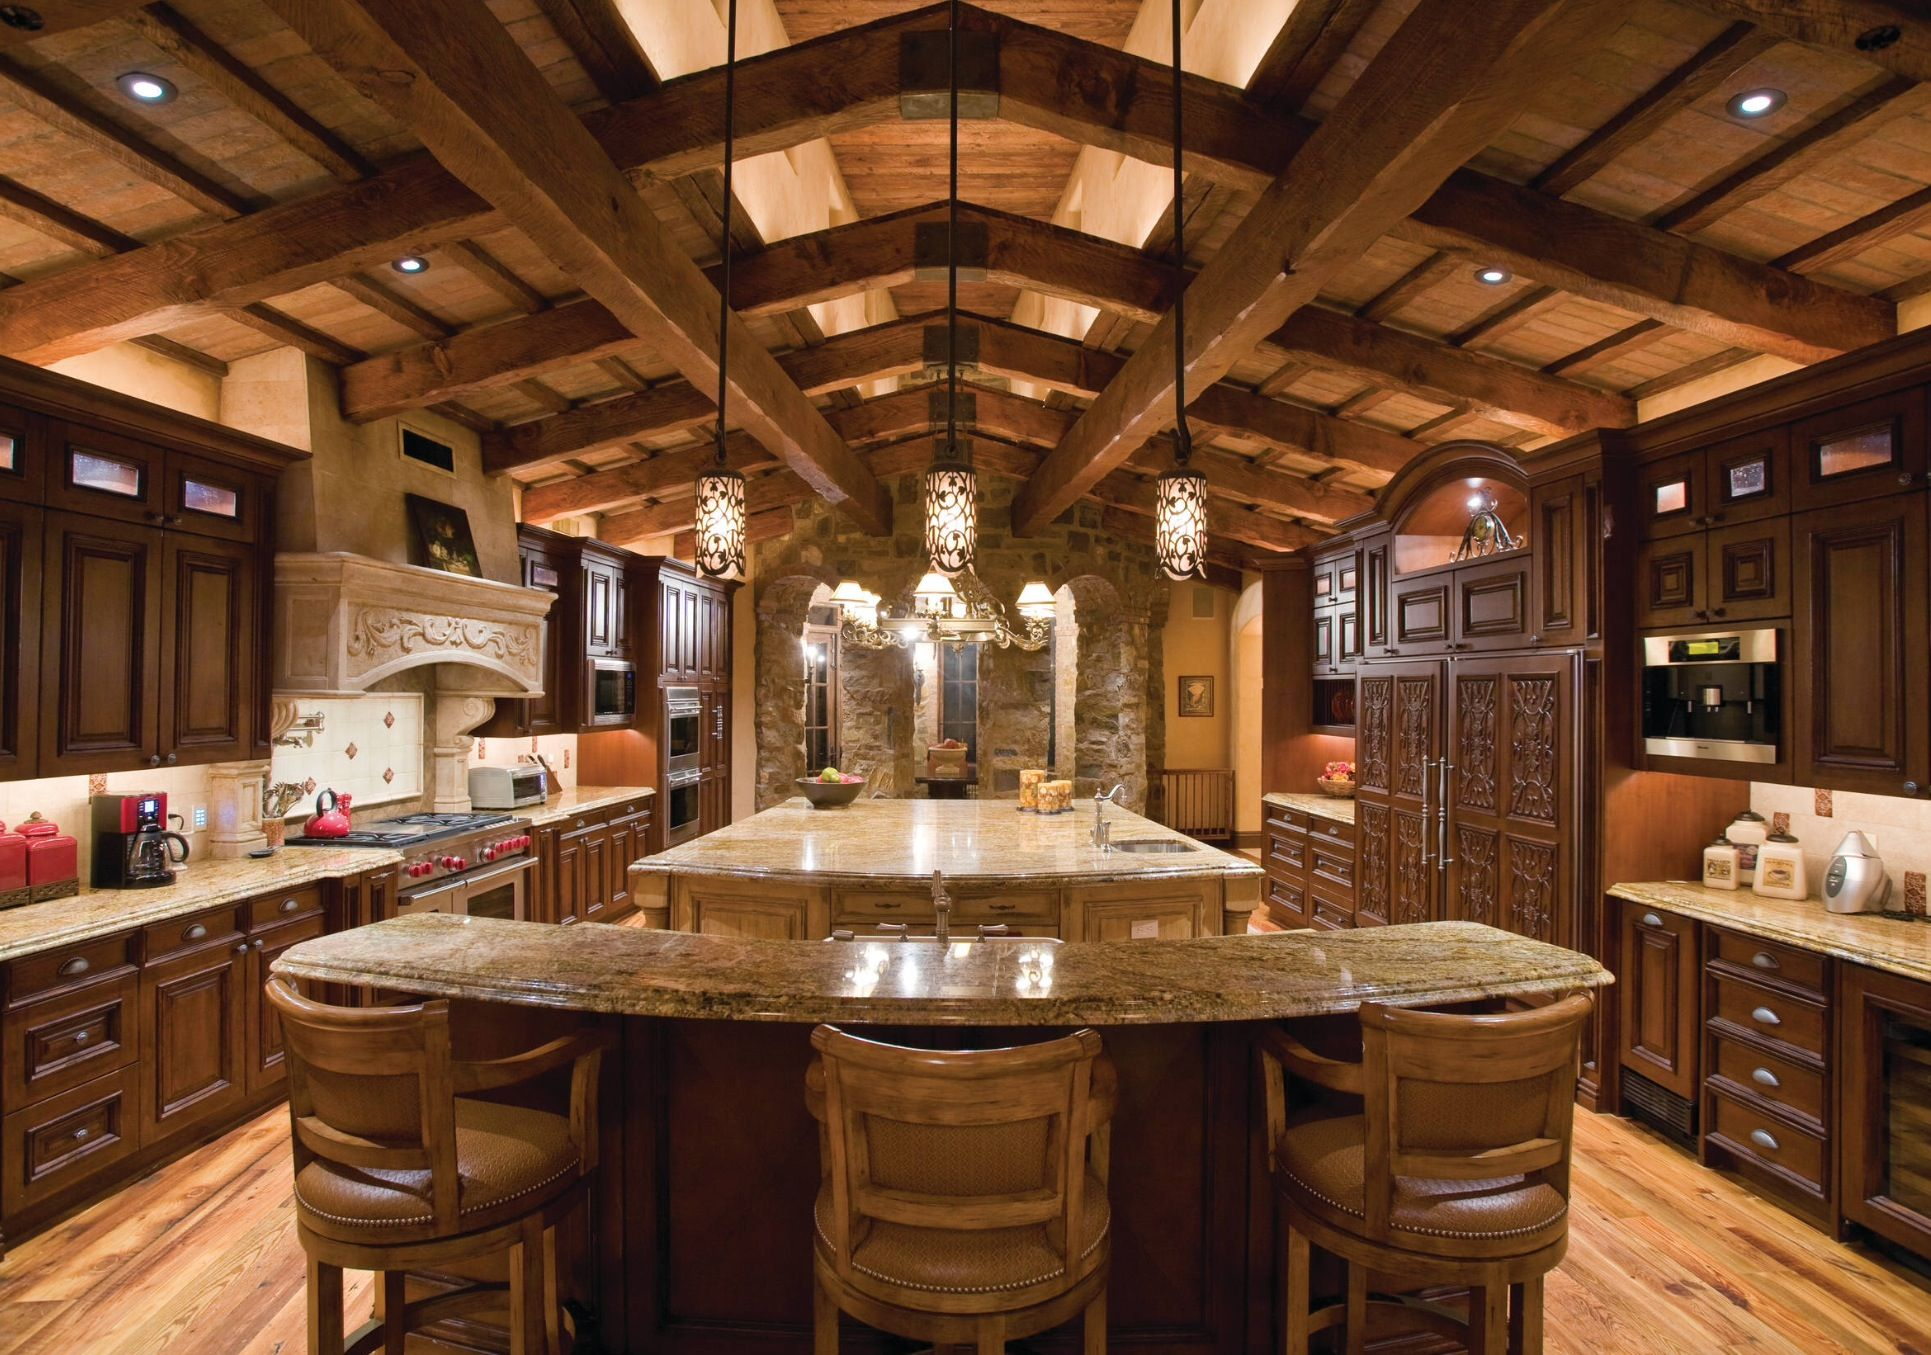 Big kitchen dream kitchen pinterest for Beautiful kitchen remodels